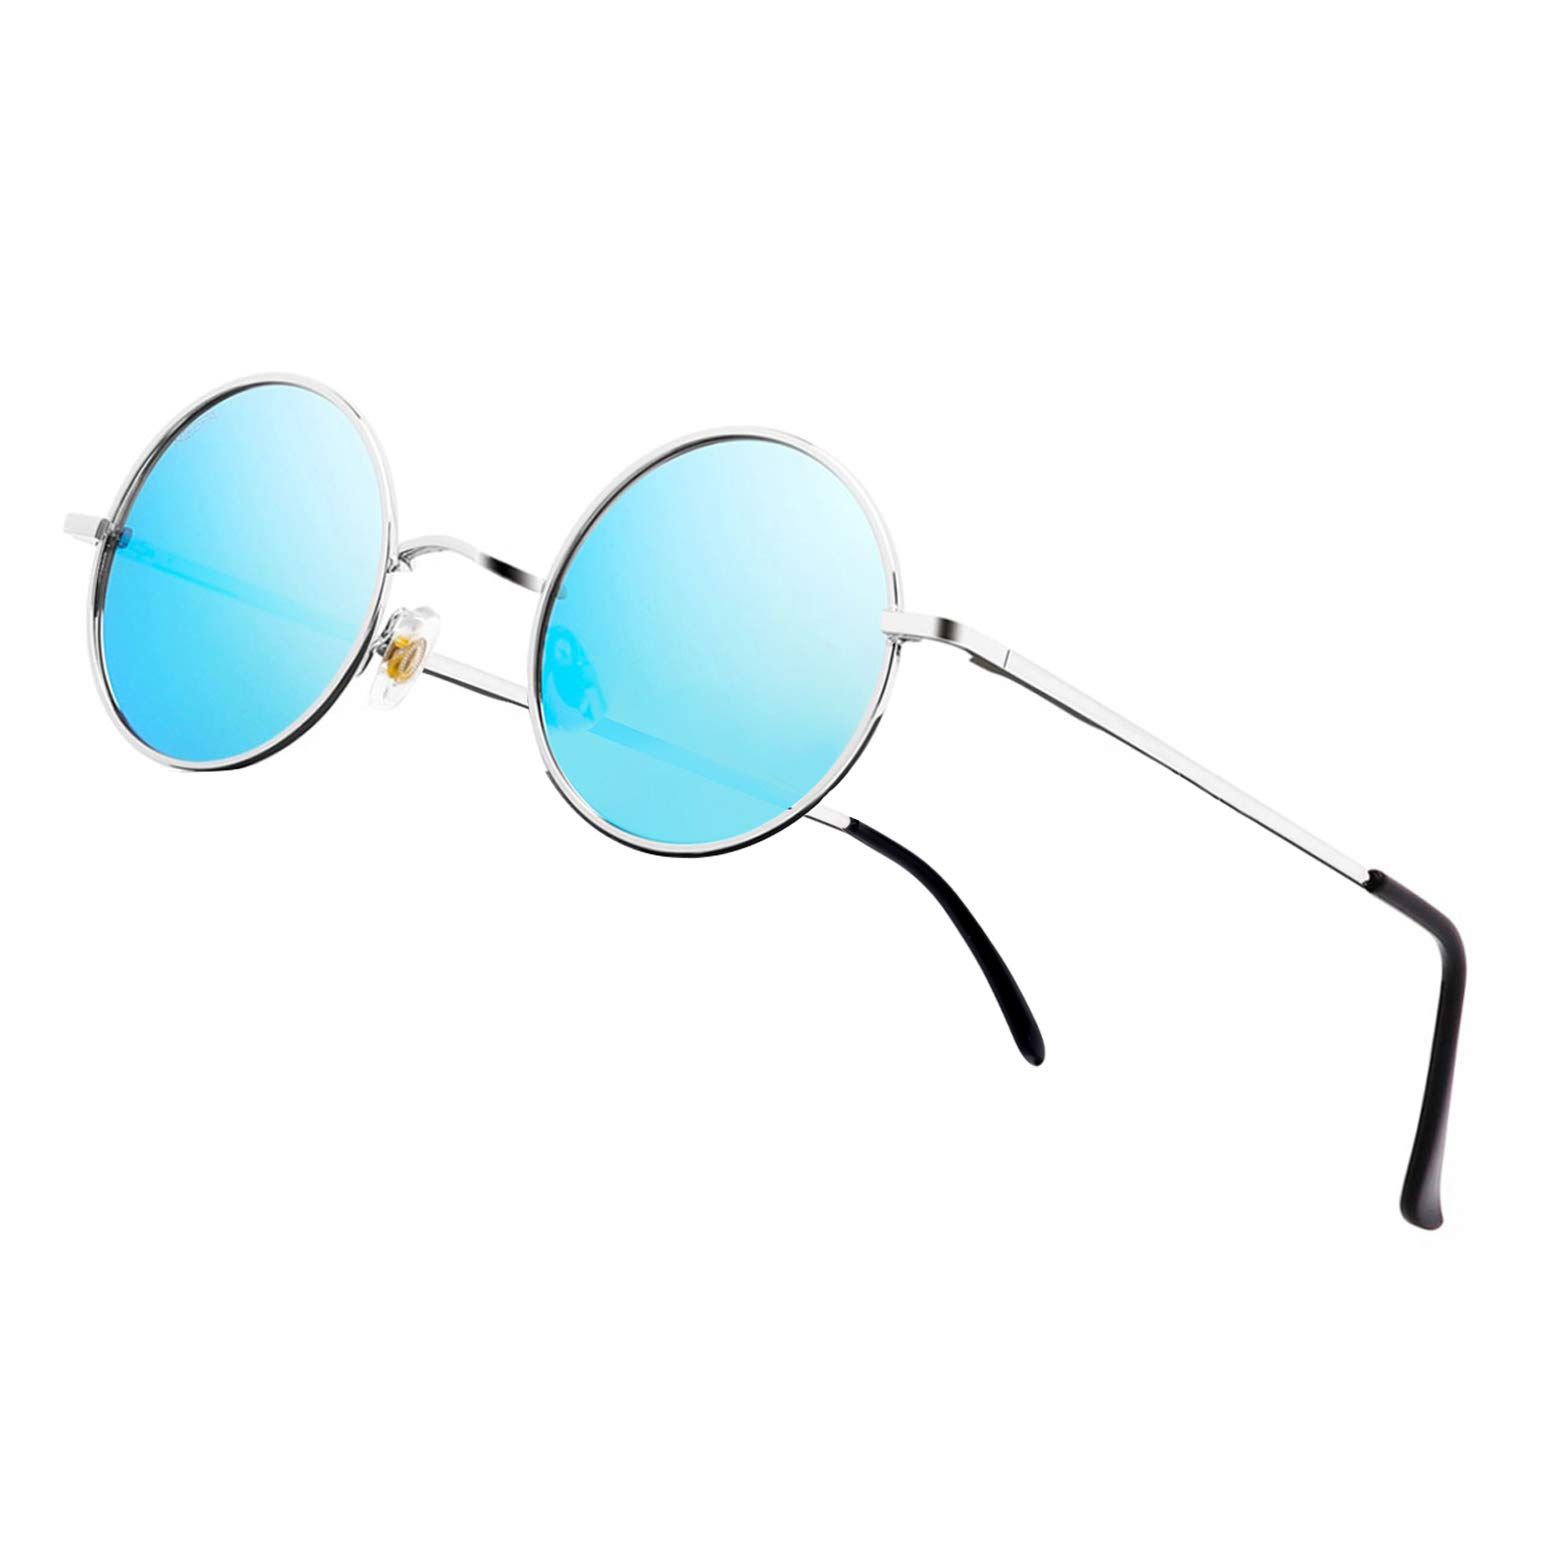 NIEEPA John Lennon Vintage Round Polarized Hippie Sunglasses Small Circle Metal Driving Sun Glasses (Blue Lens/Silver Frame) by NIEEPA